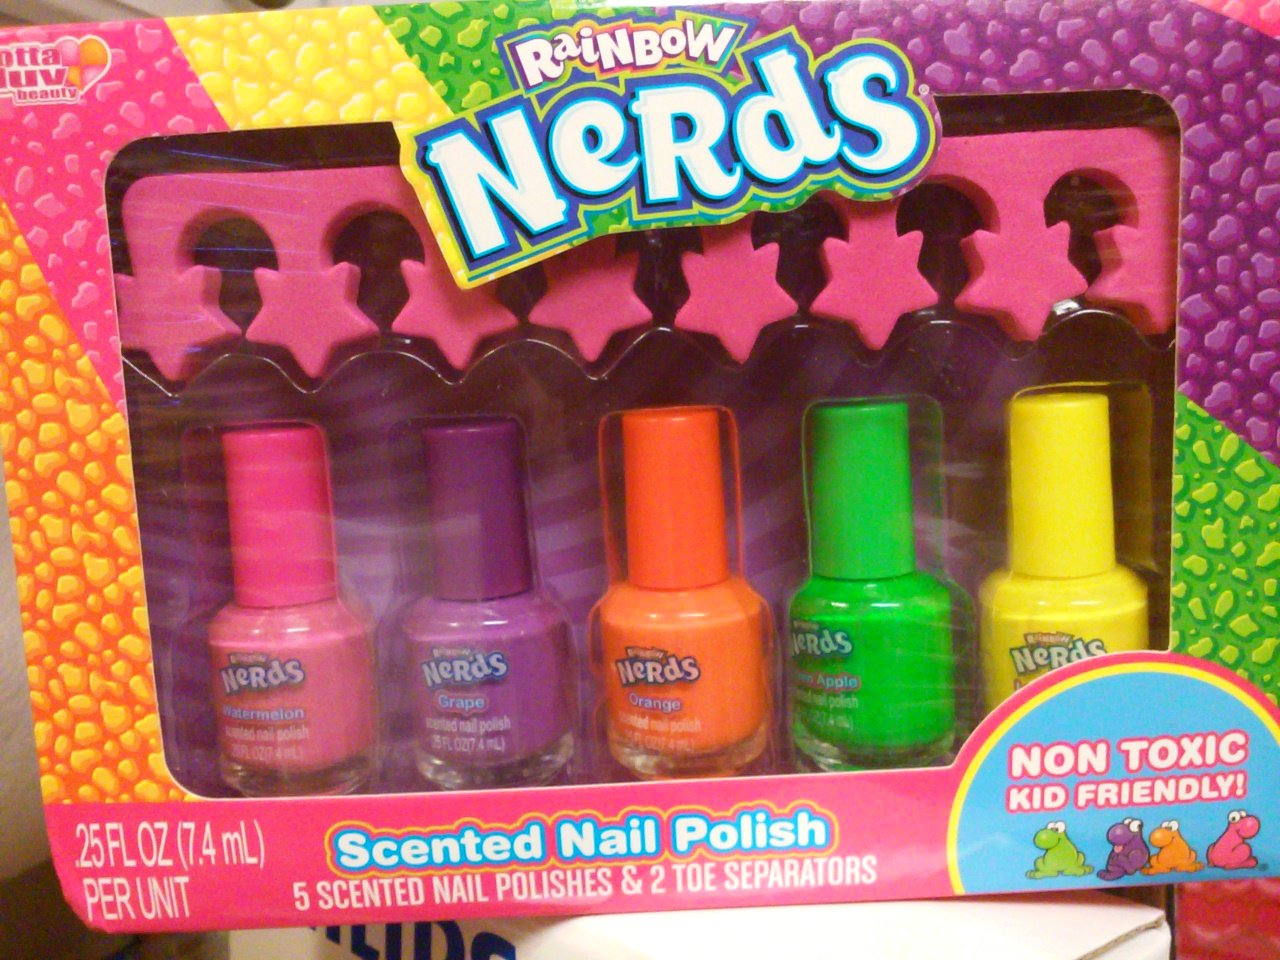 Amazon.com : Rainbow Nerds Scented Nail Polish Set with Toe ...